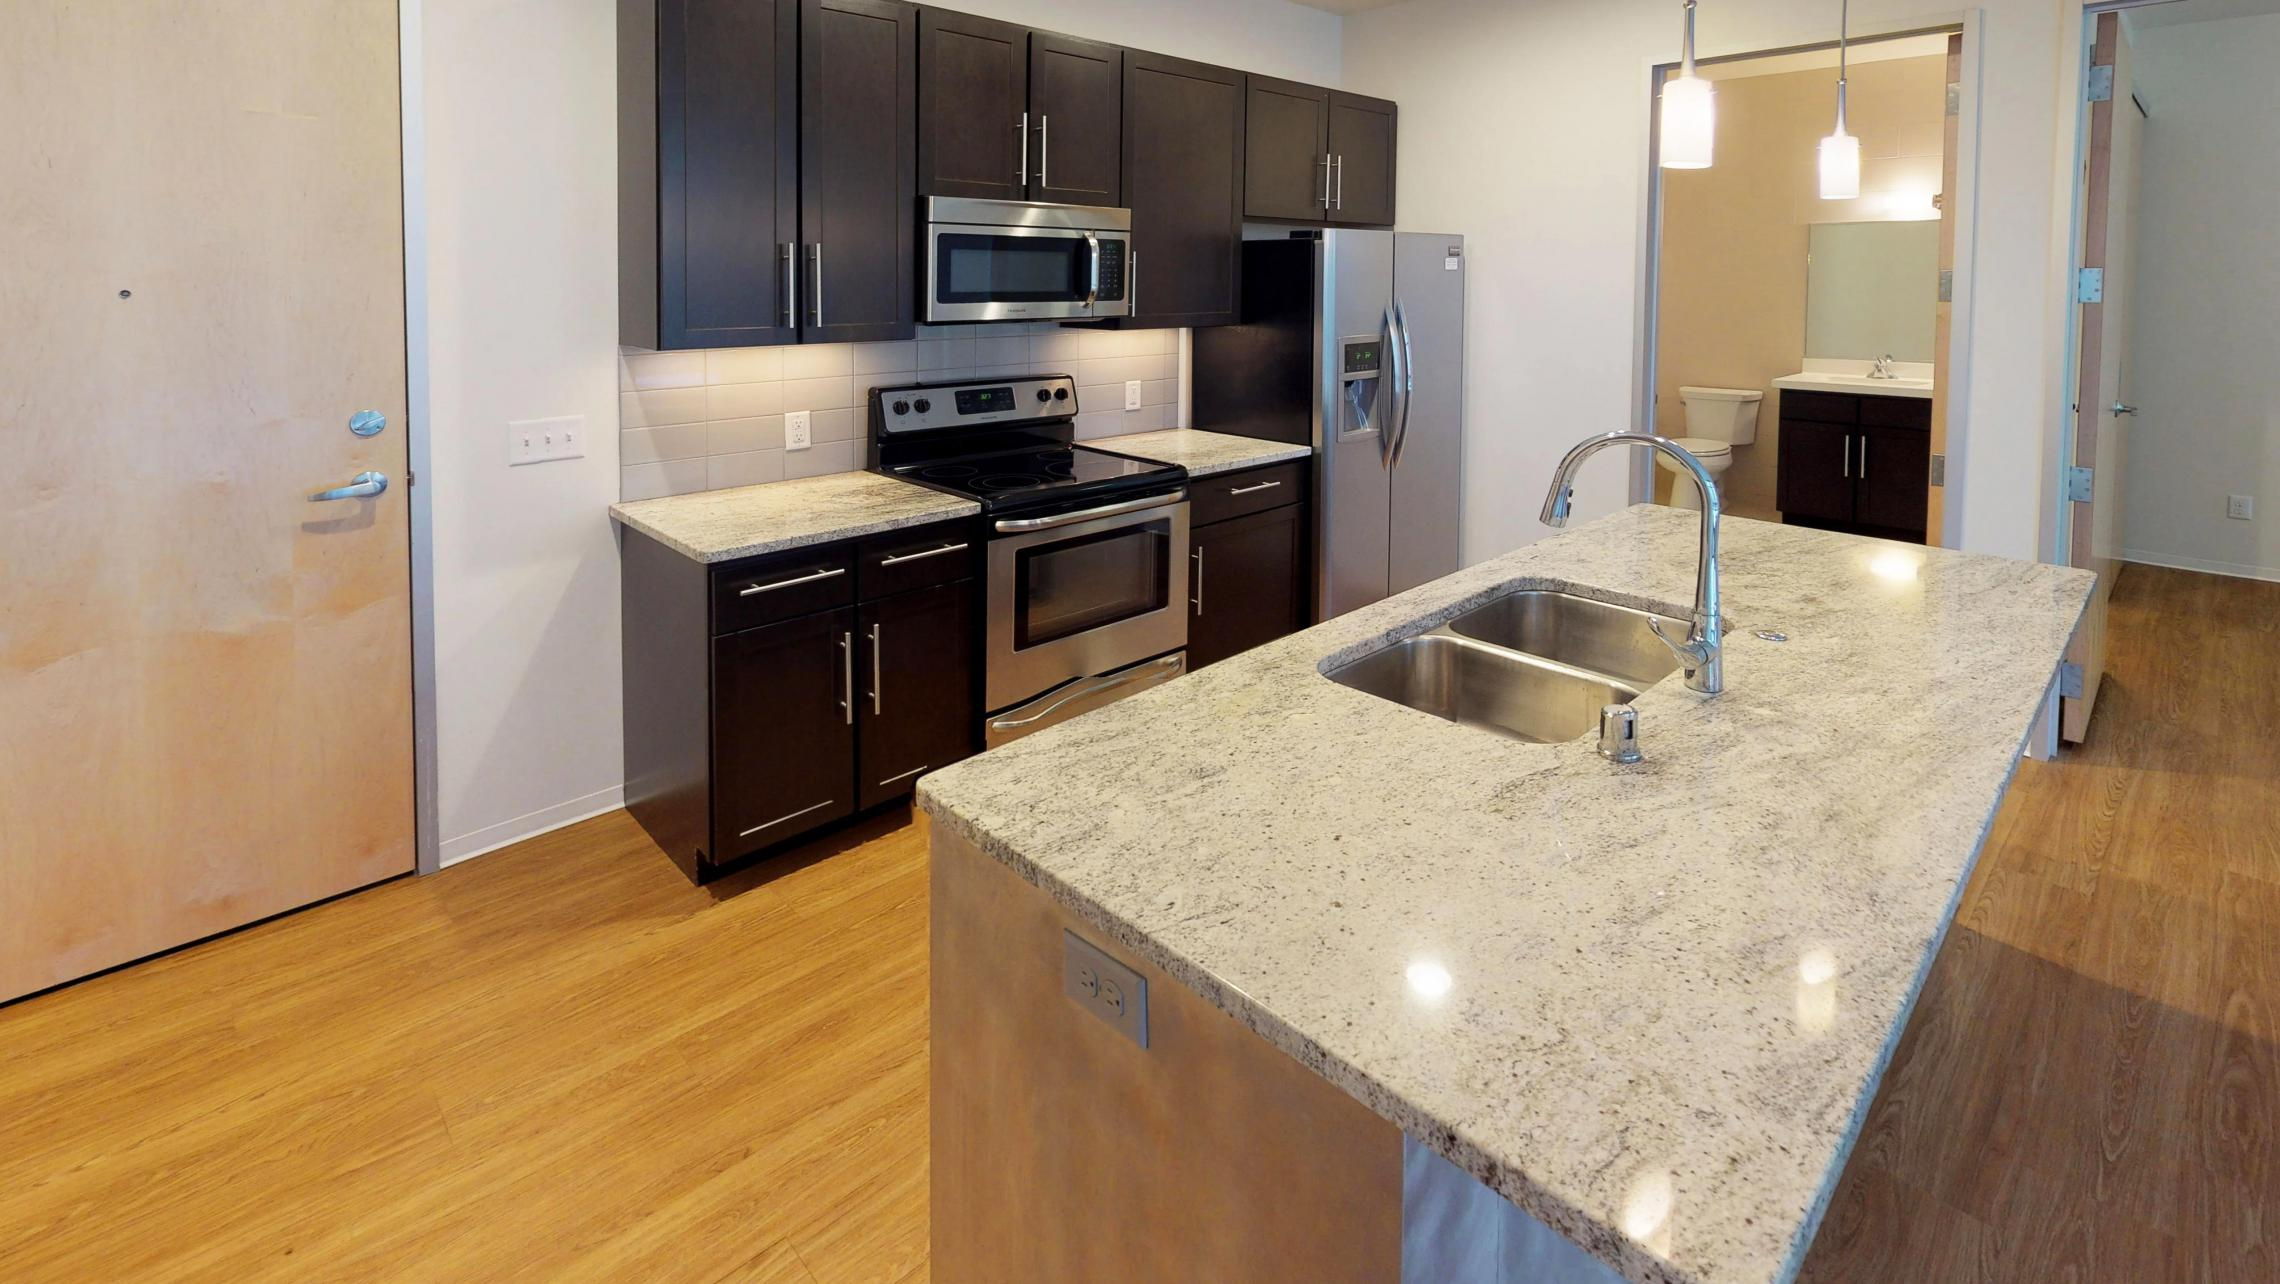 Capitol-Hill-500-kitchen-one bedroom-capitol view-downtown-luxury-modern.jpg